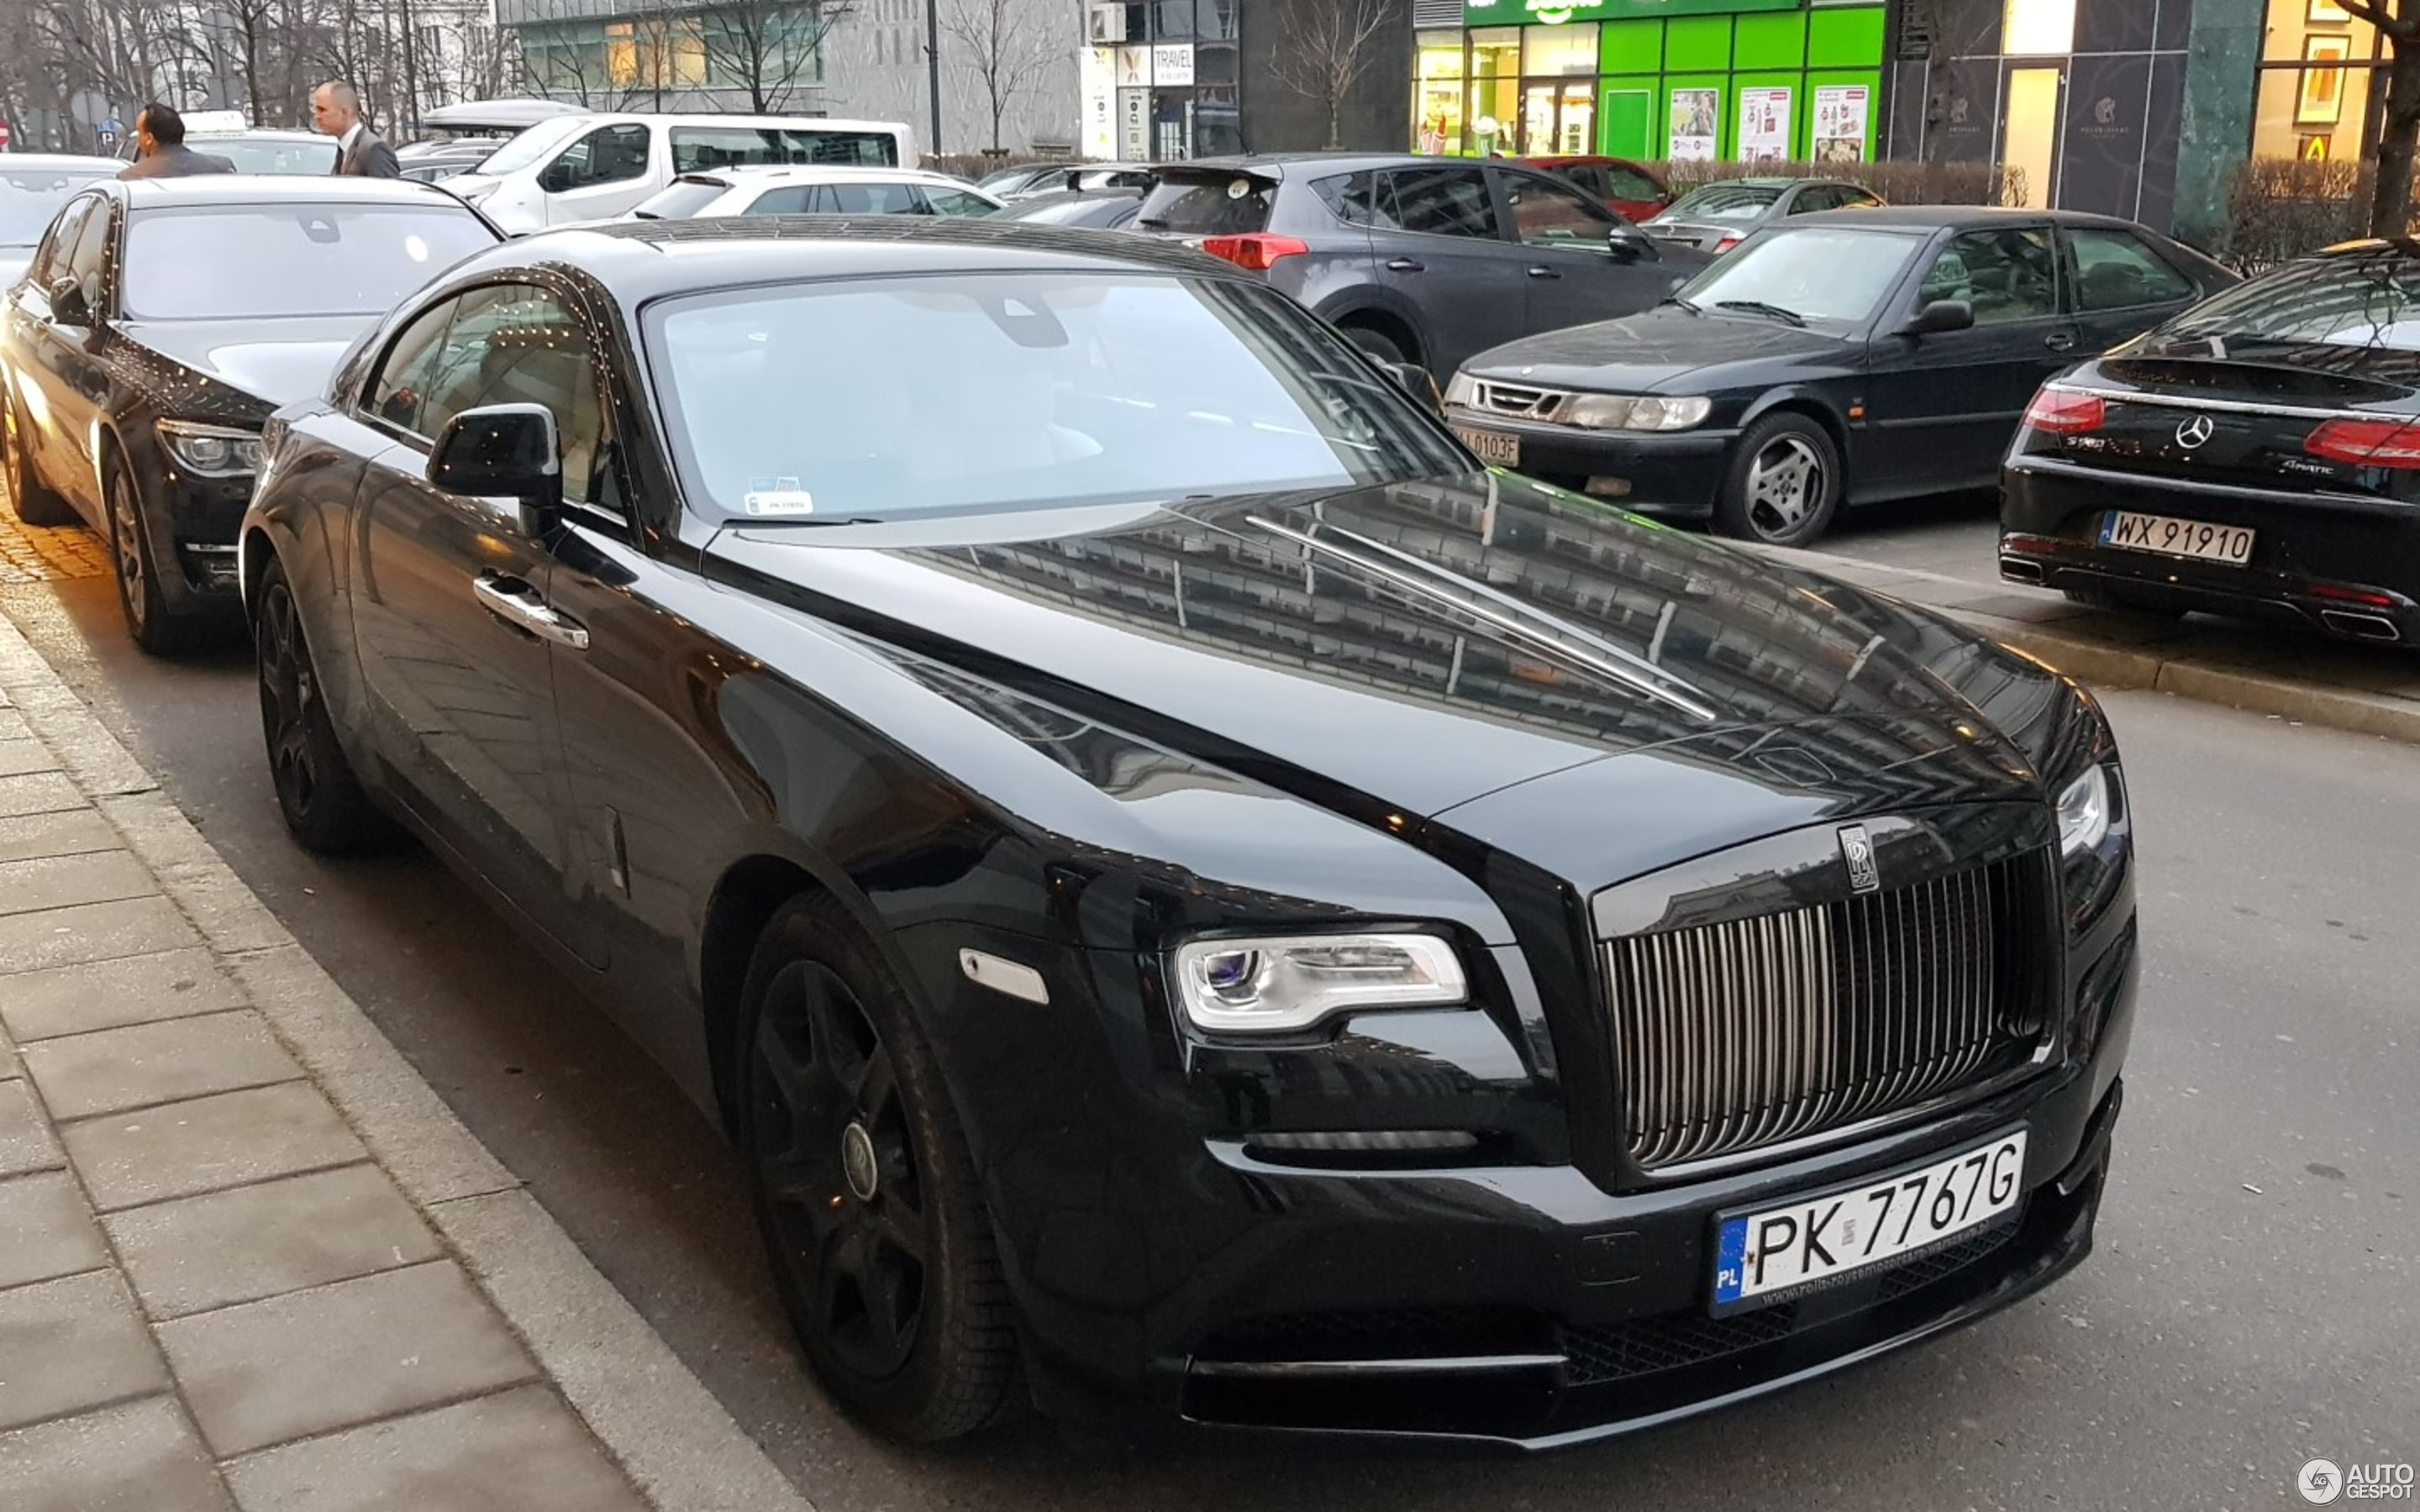 Rolls Royce Wraith Black Badge 10 April 2018 Autogespot